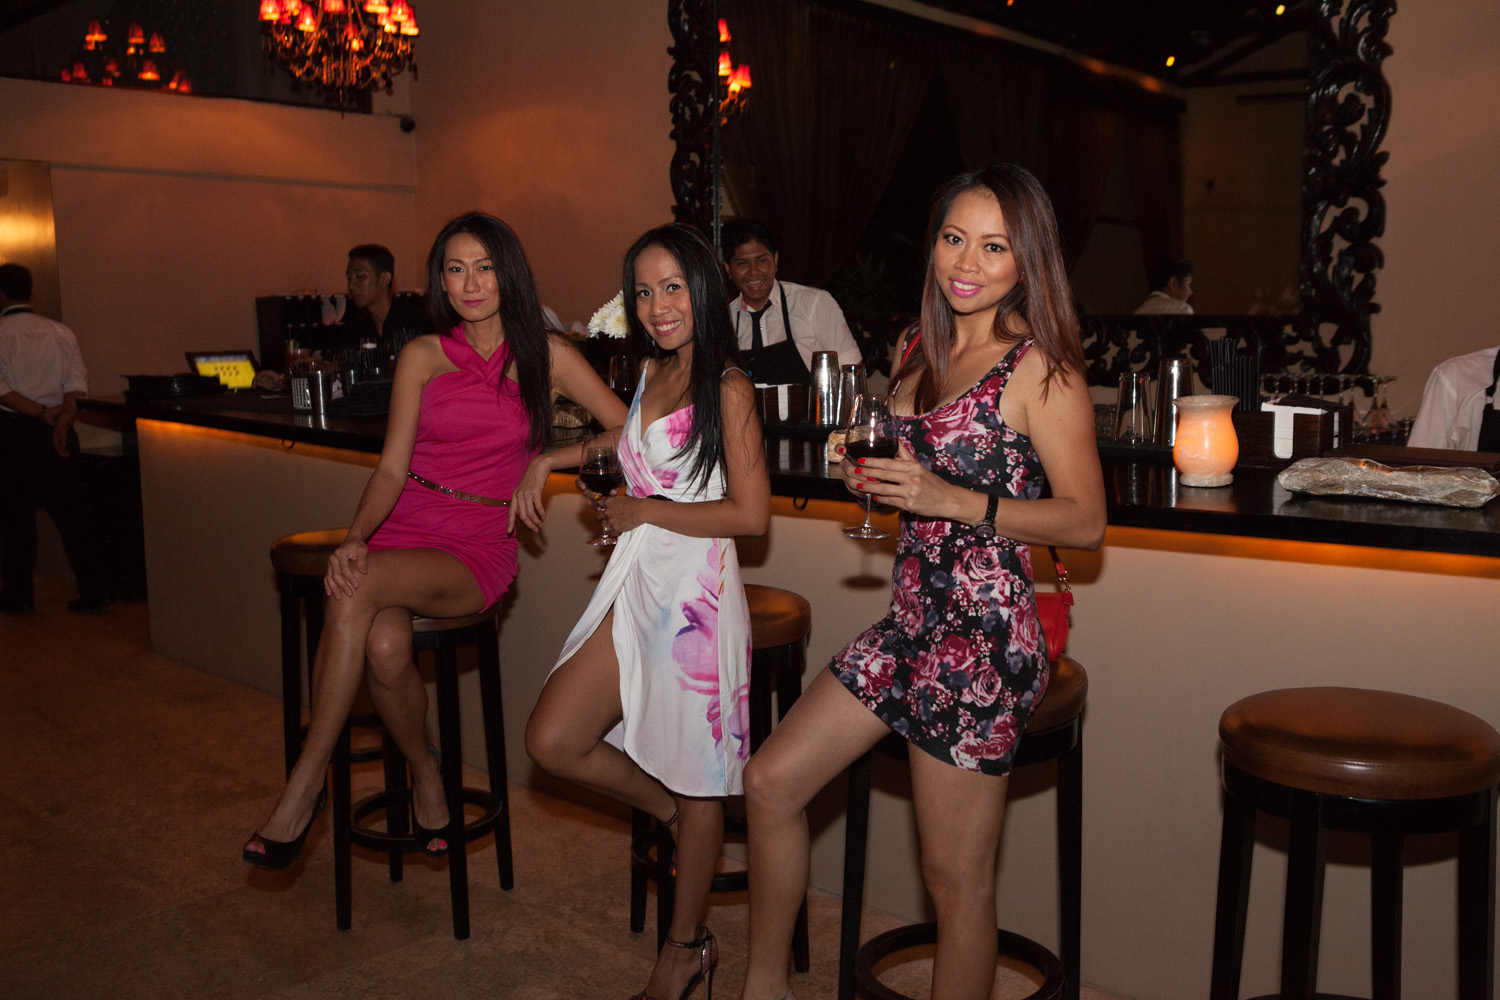 07_Birthday Dinner @Sarong 2015-09-26